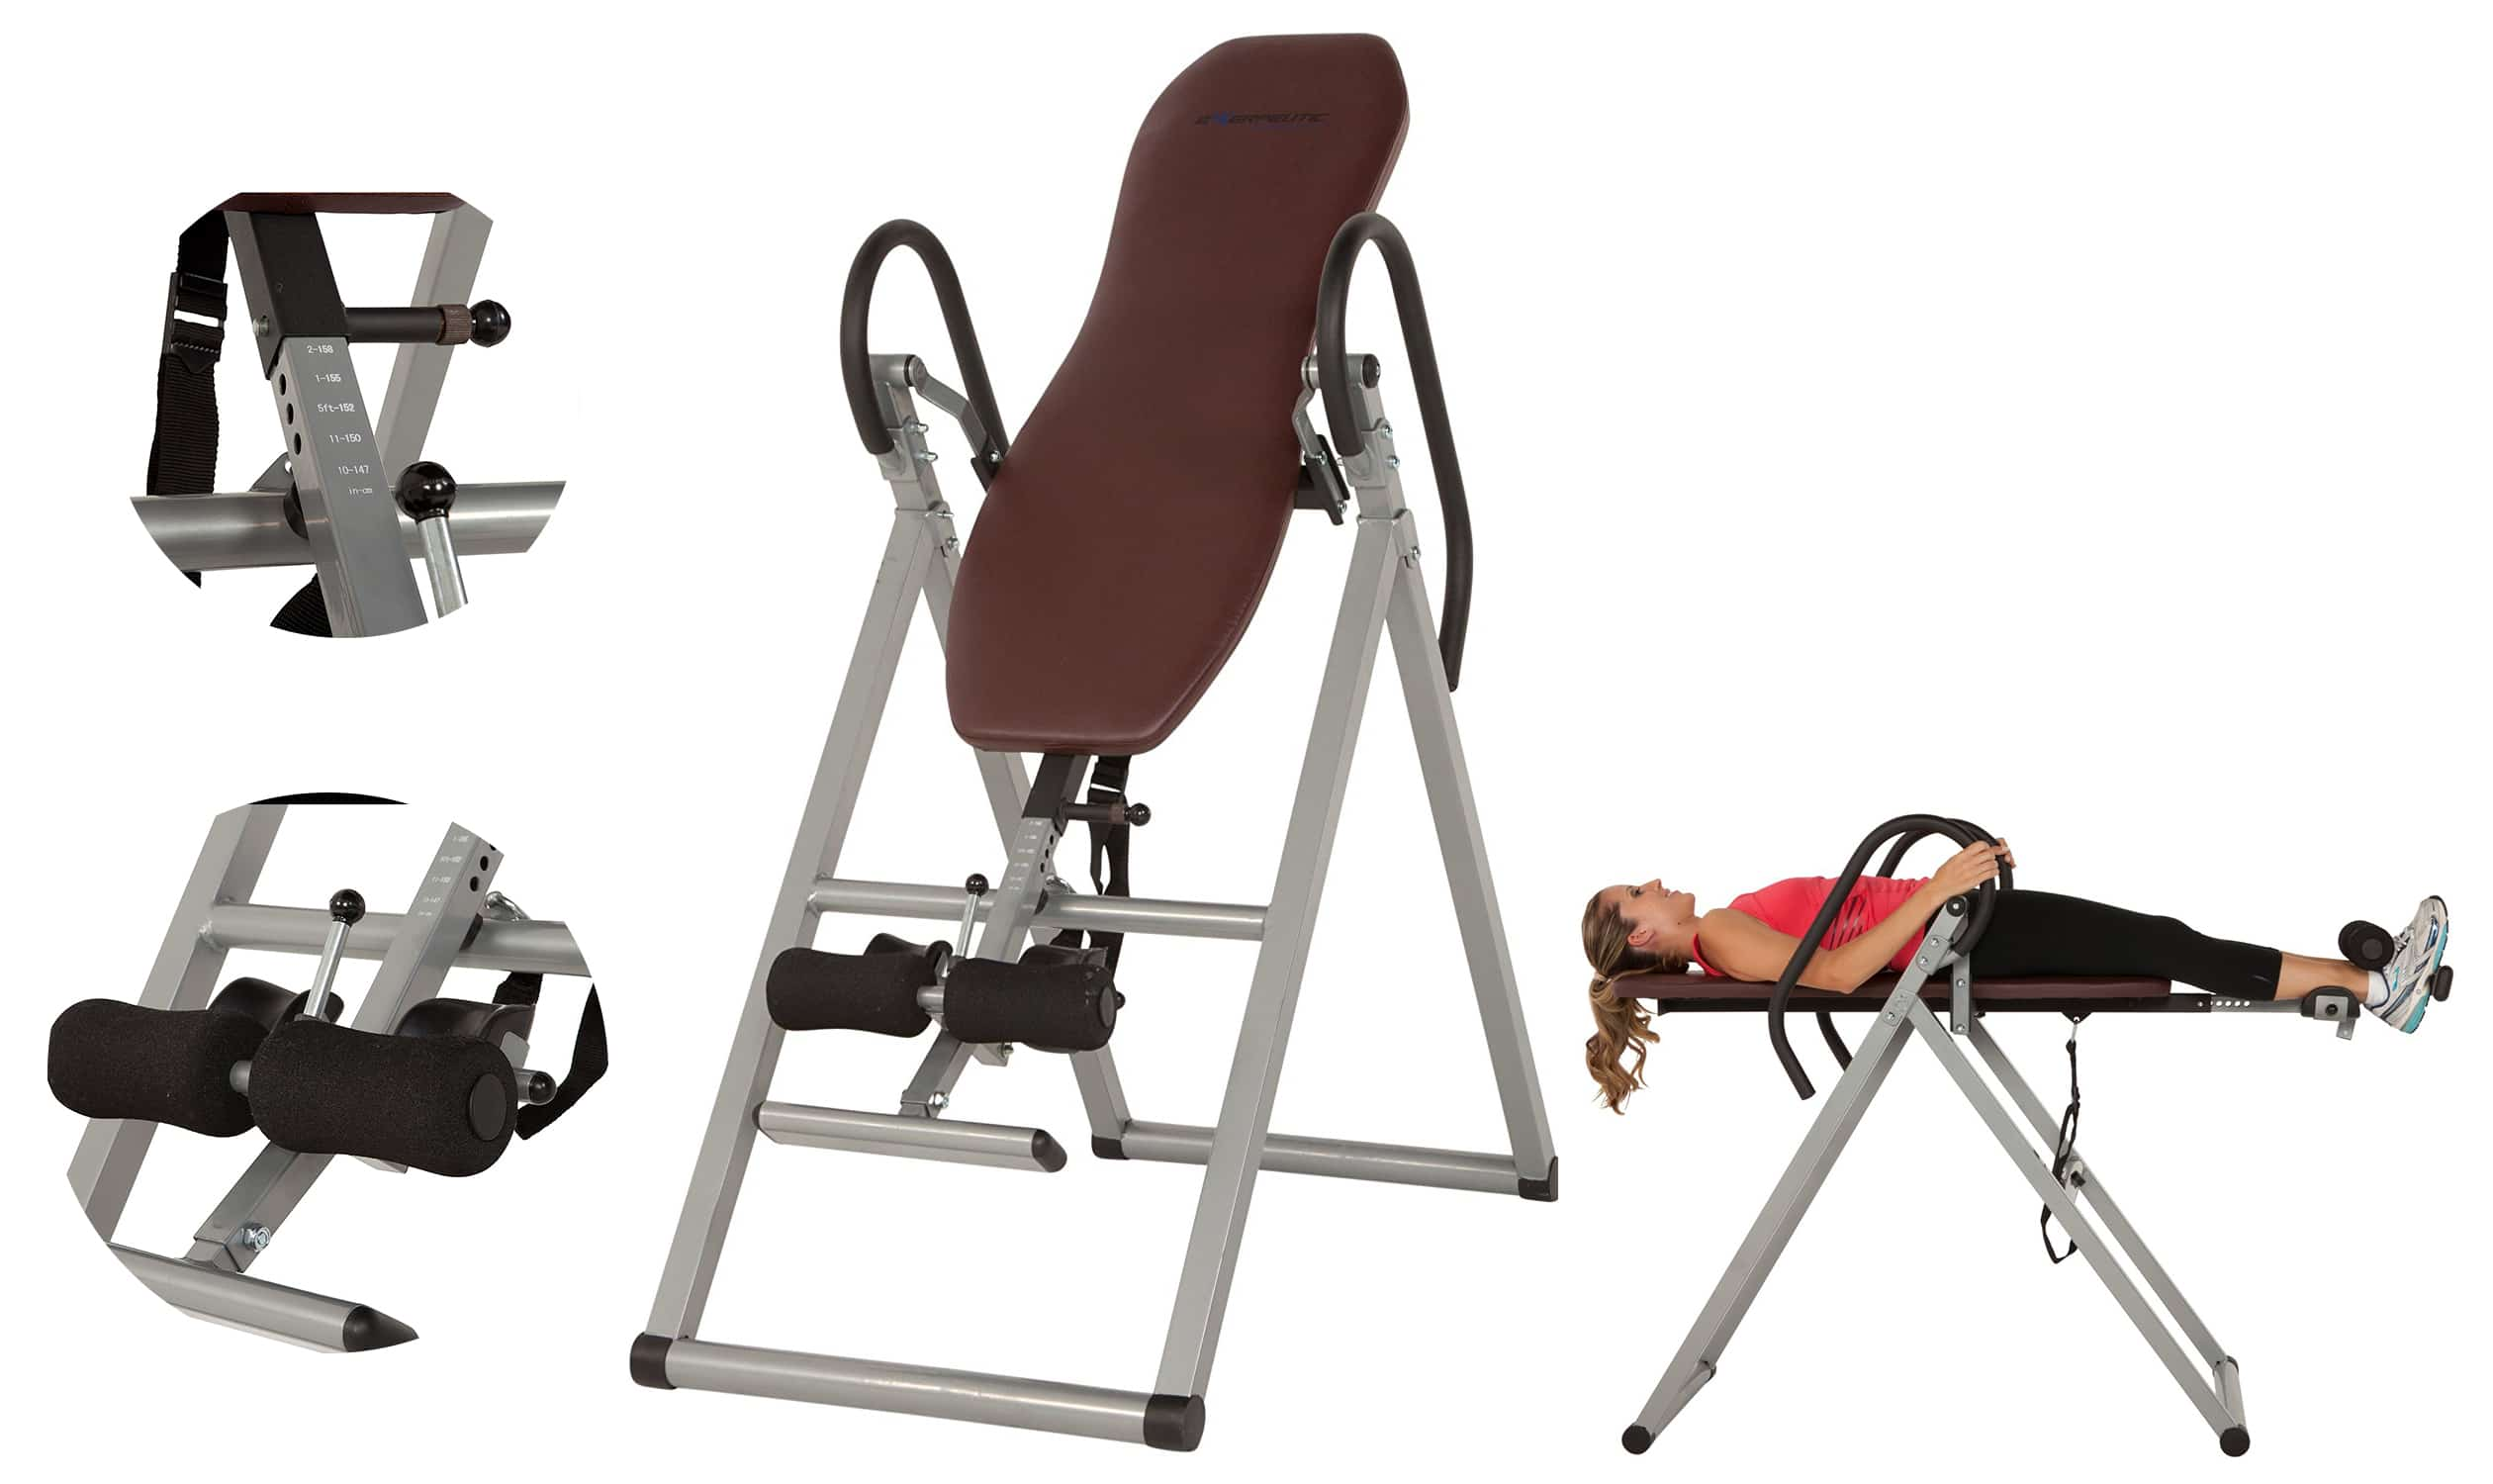 top 10 best inversion tables review may 2019 a complete guide rh buythebest10 com